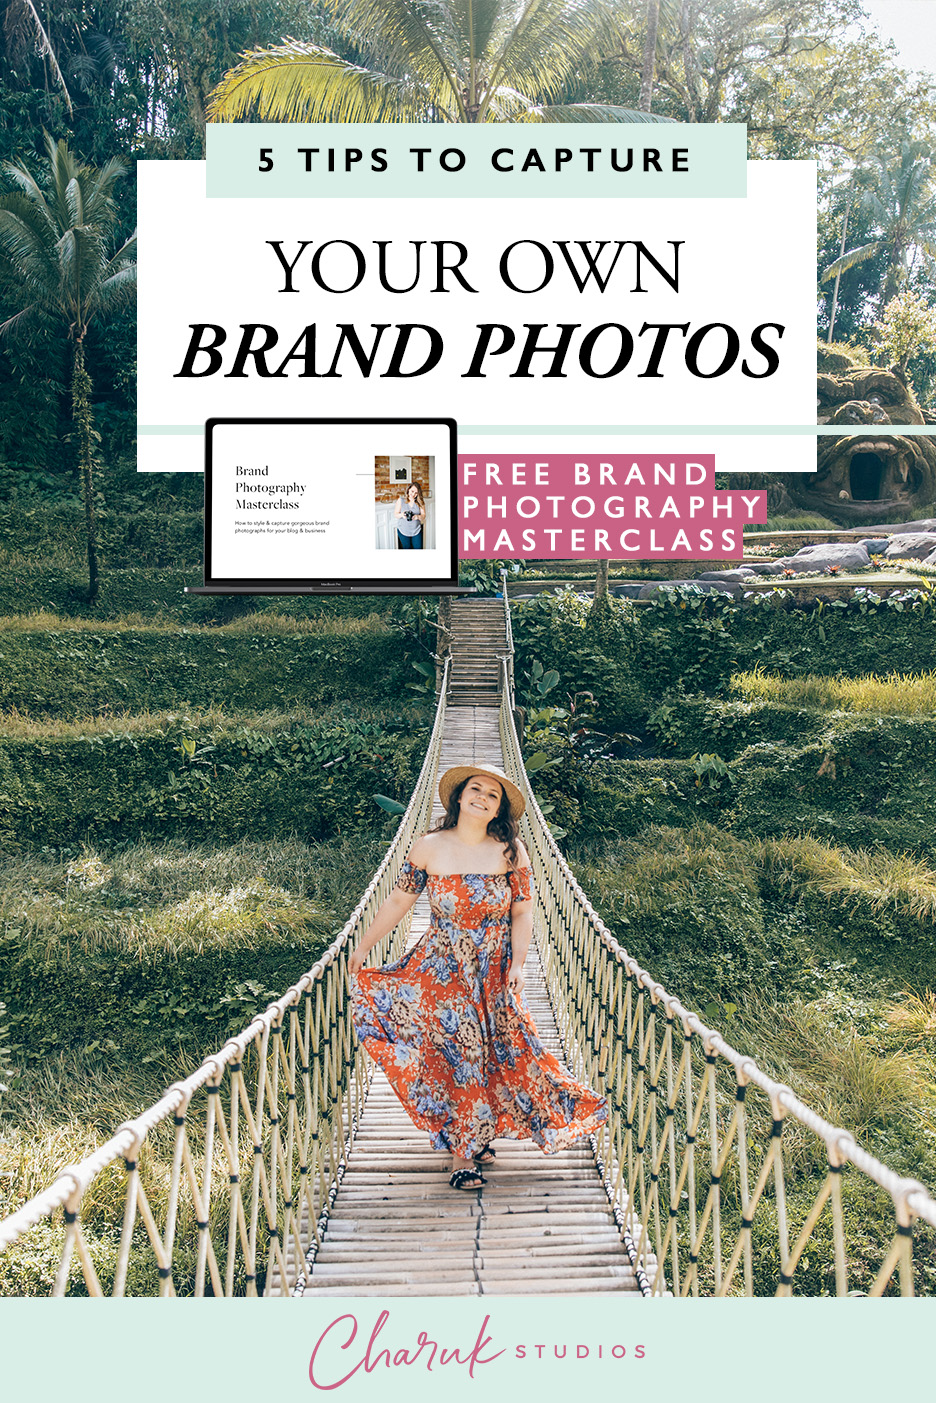 5 Tips to Capture Your Own Brand Photos by Charuk Studios